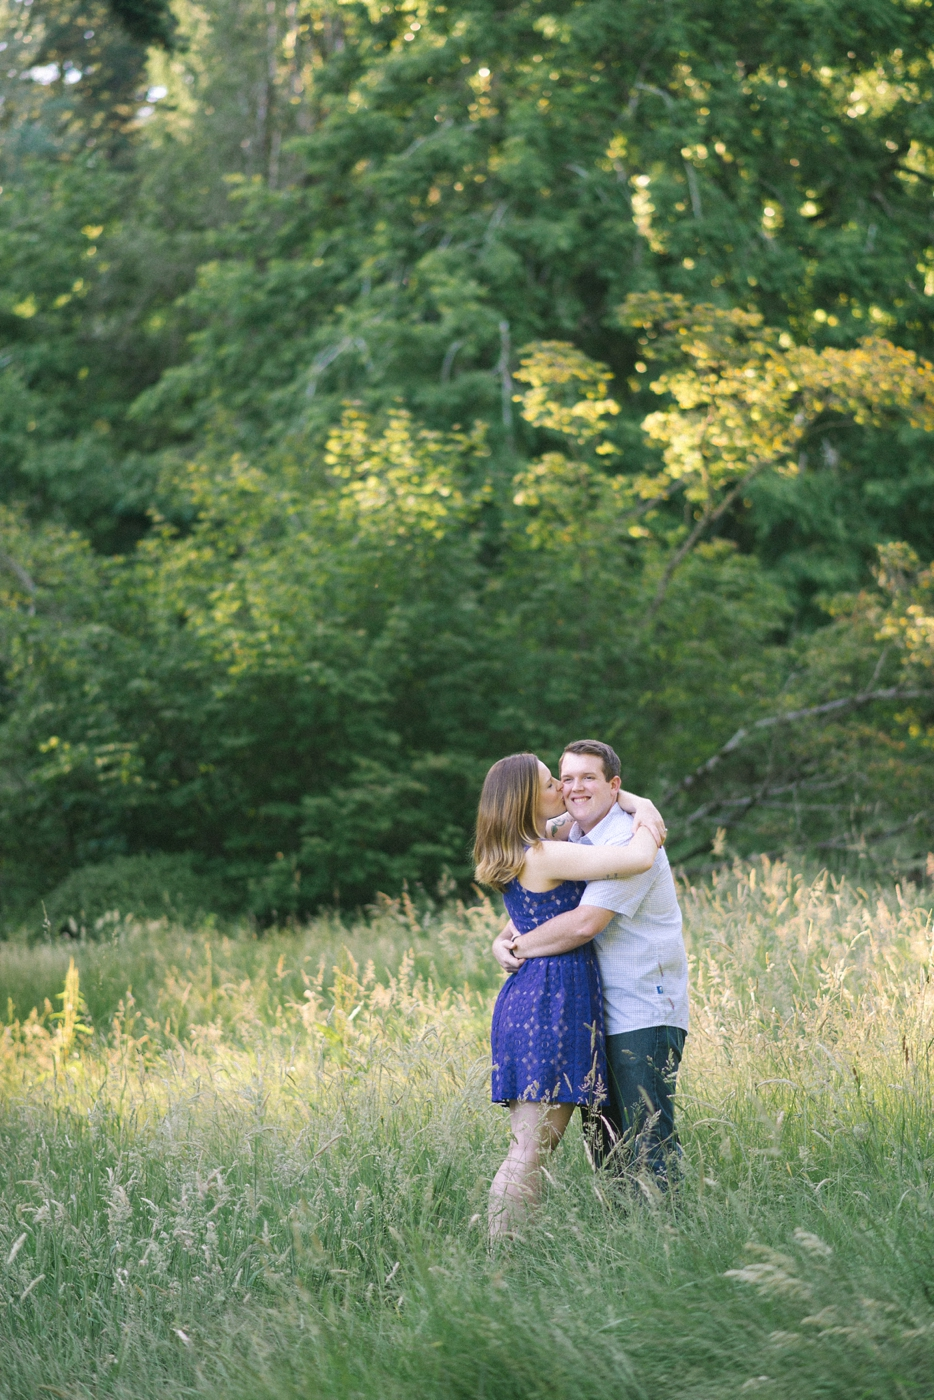 engagement-photography-portland-oregon-hoyt-arboretum-washington-park-romantic-couples-portraits-nature-natural-light-forest-field-kiss-shelley-marie-photo-4